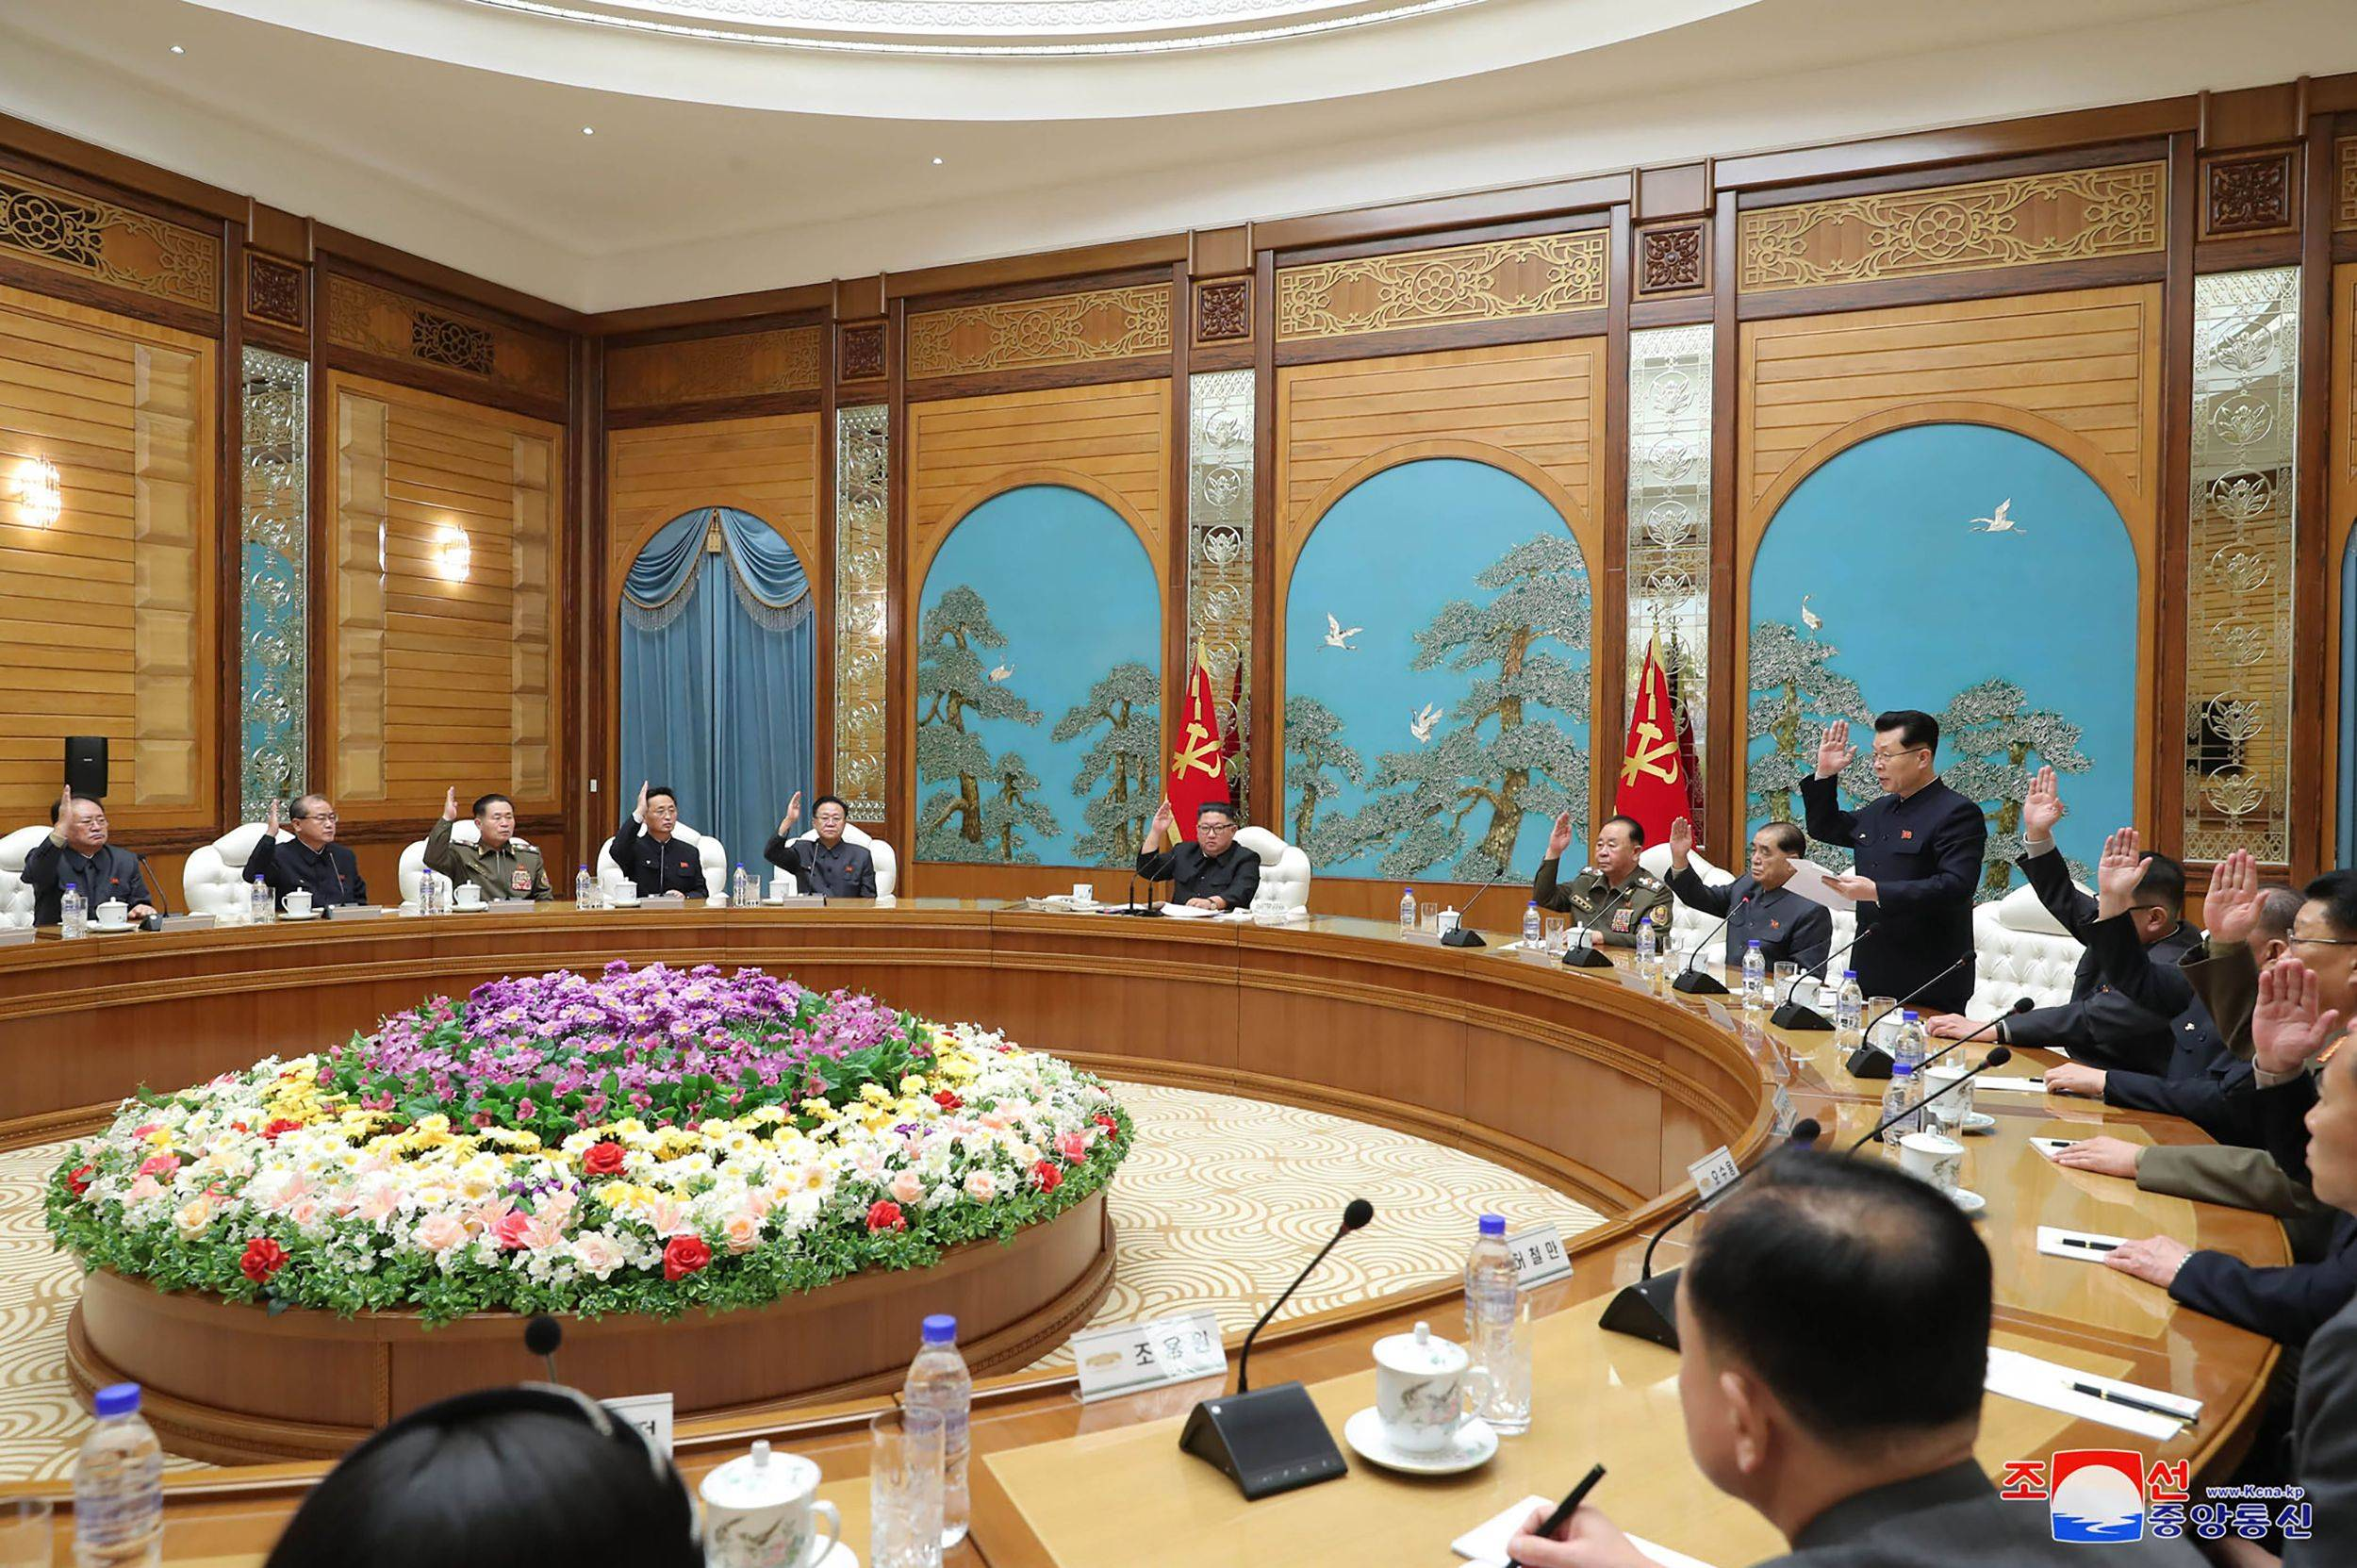 North Korean leader Kim Jong Un (center, top) holds a committee meeting on Tuesday. | KCNA / VIA KNS / VIA AFP-JIJI